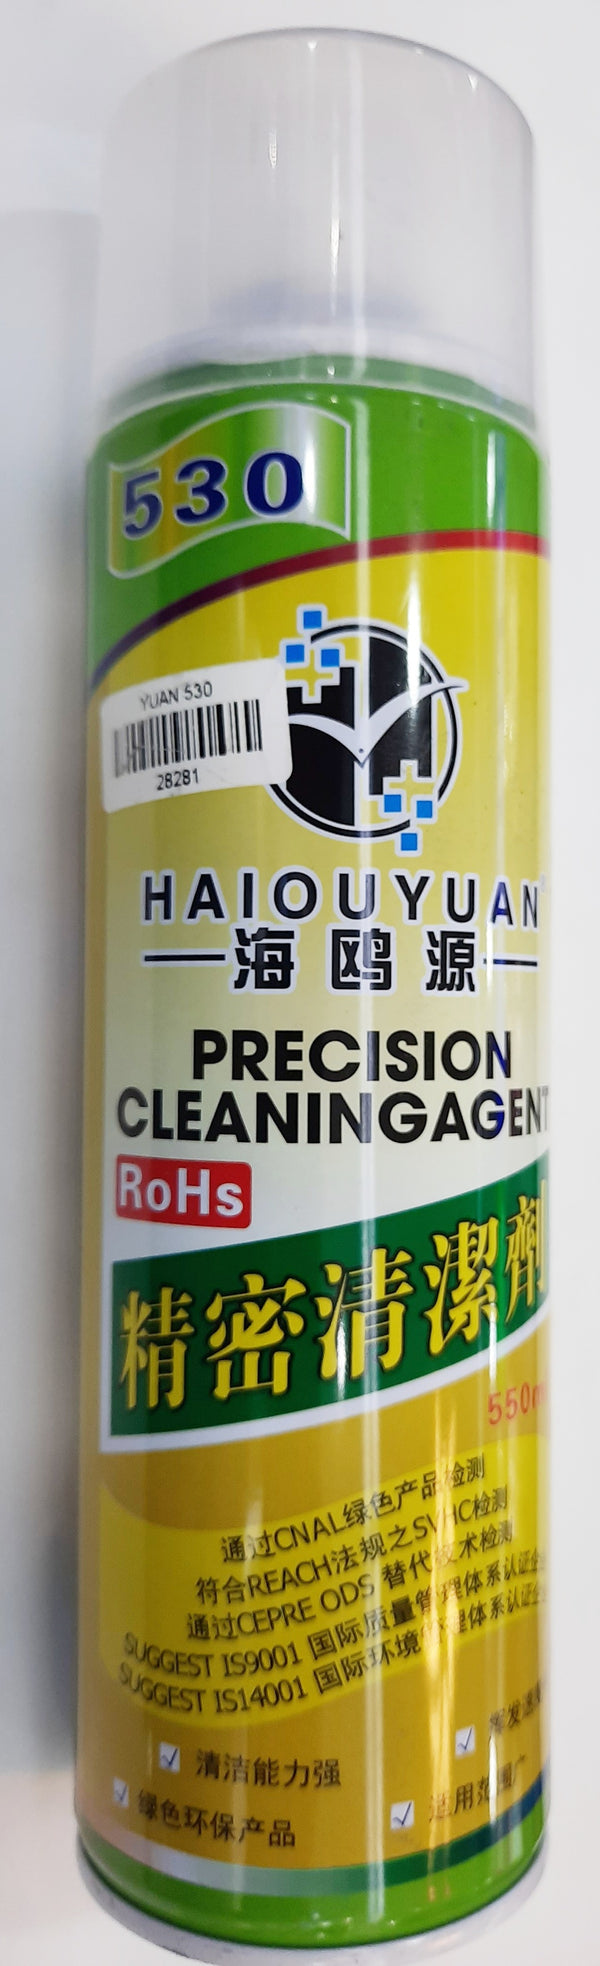 Precision Cleaning Agent - Haiouyuan 530